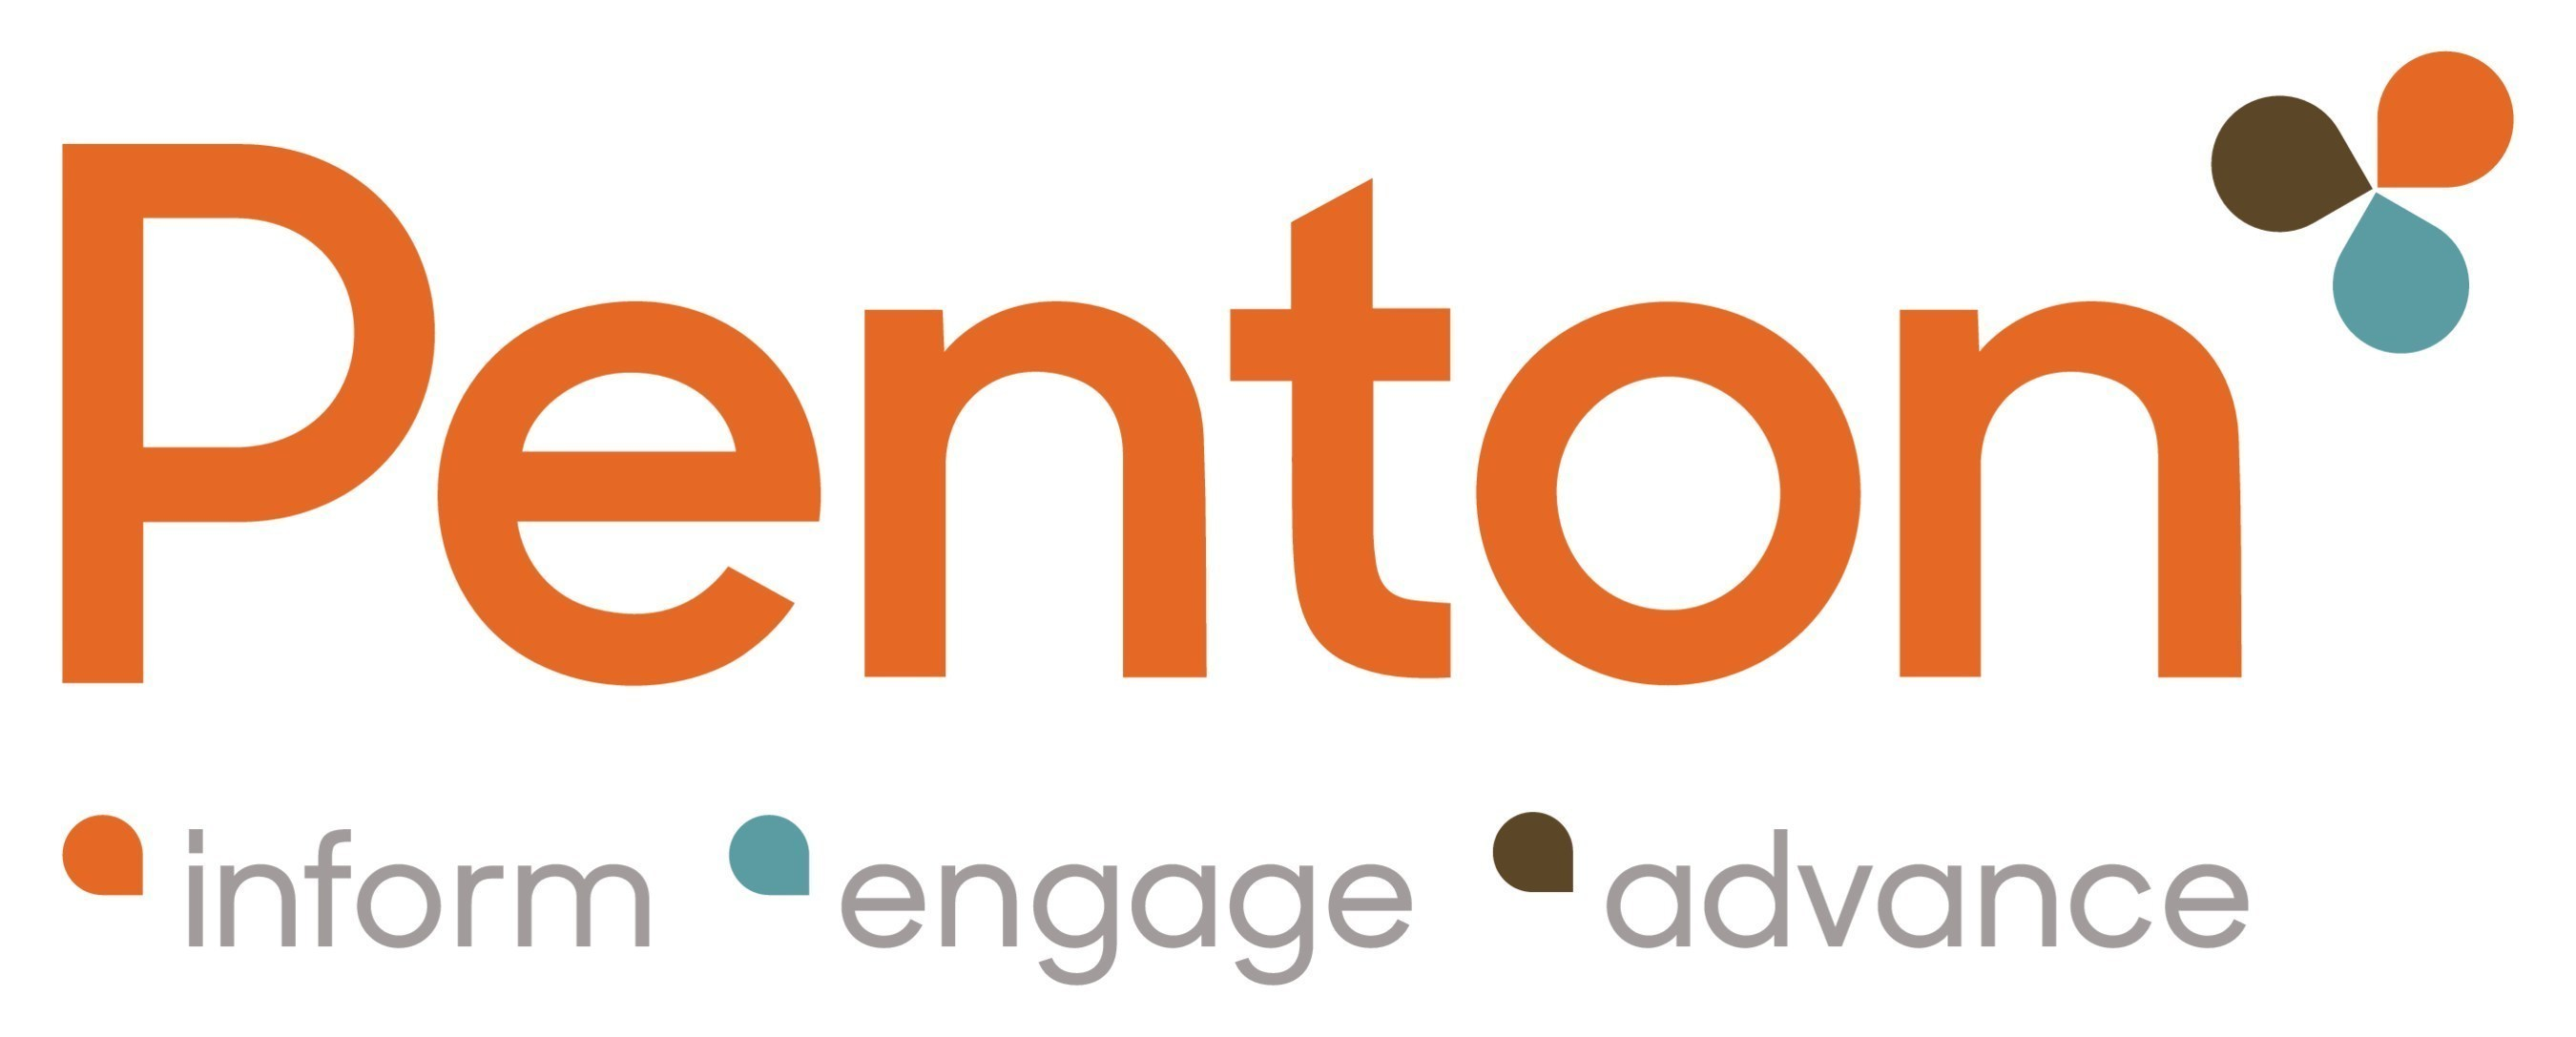 Penton Offers a Roadmap to Shape the User Experience in the Professional Information Services